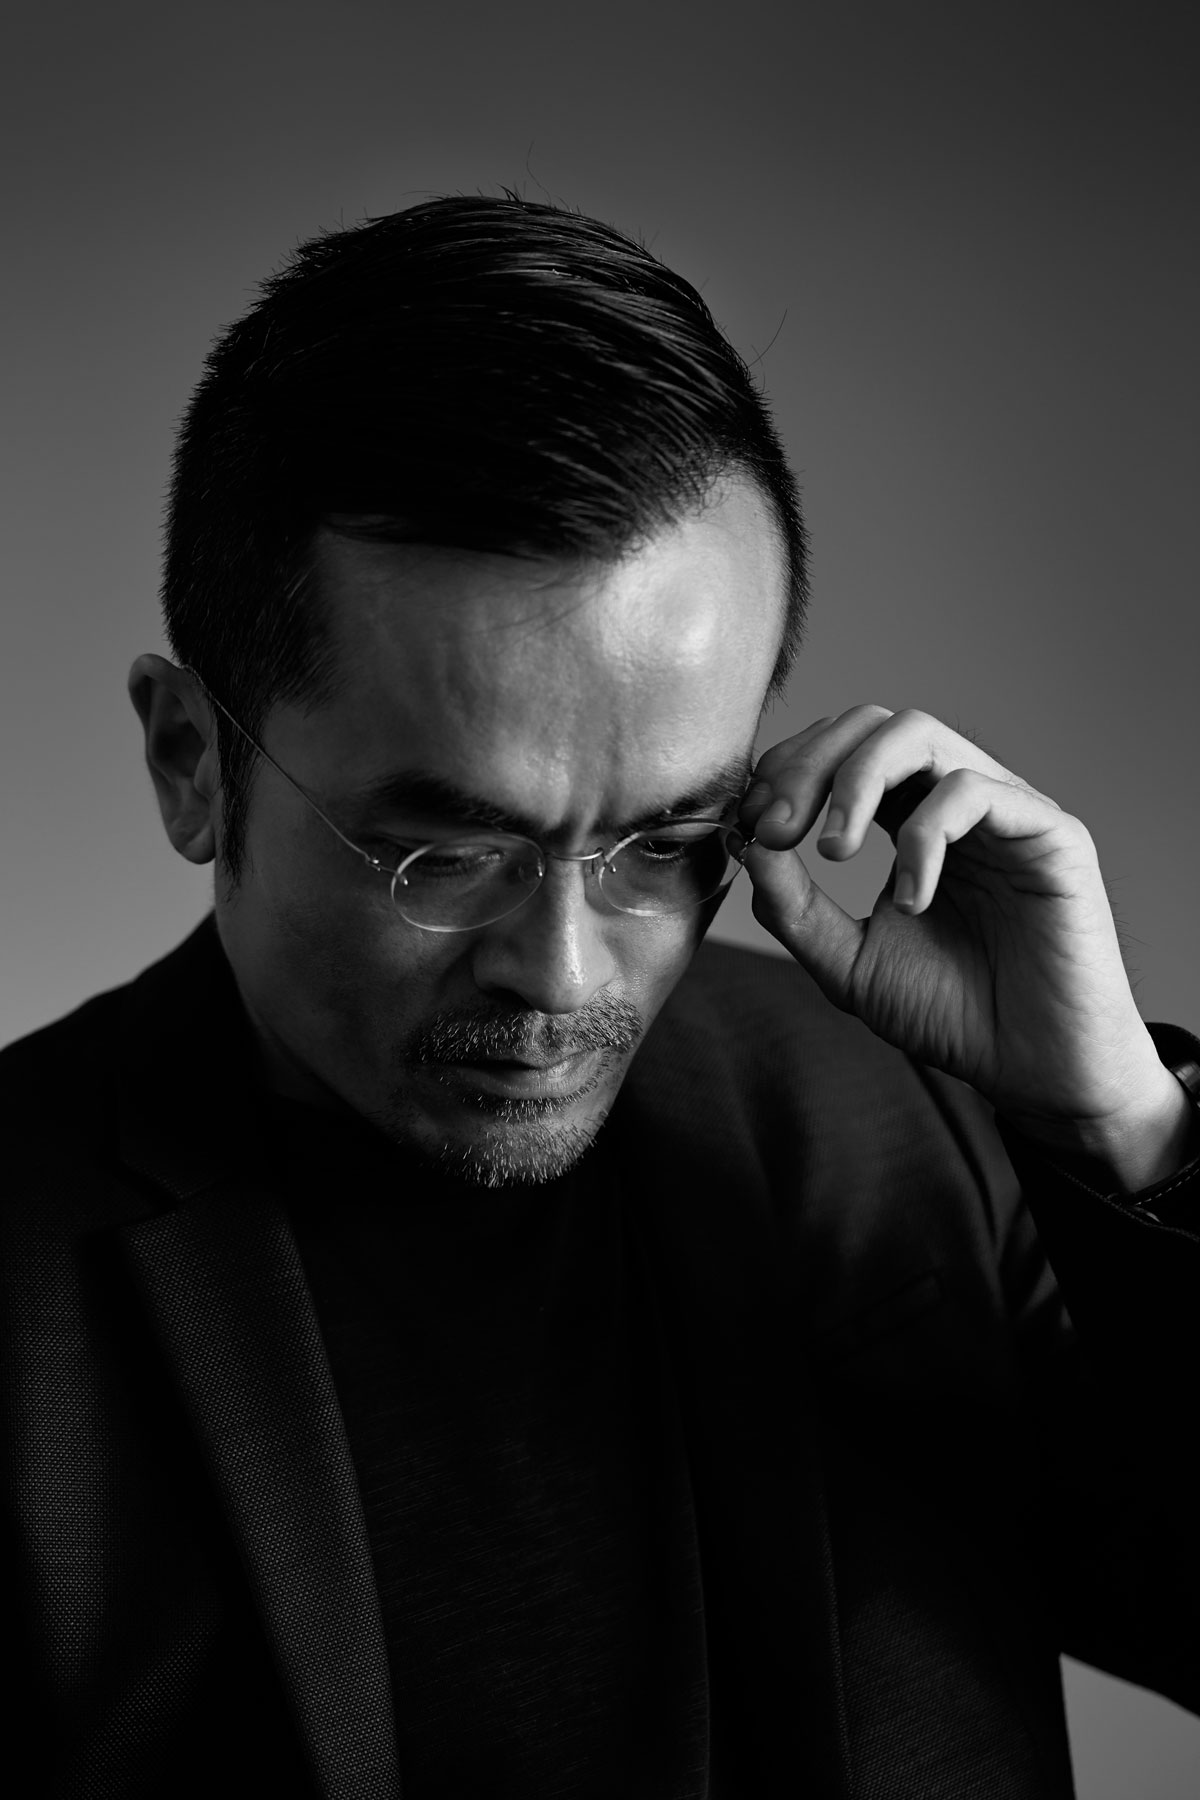 10 Questions With Mike Lim Of DP Design